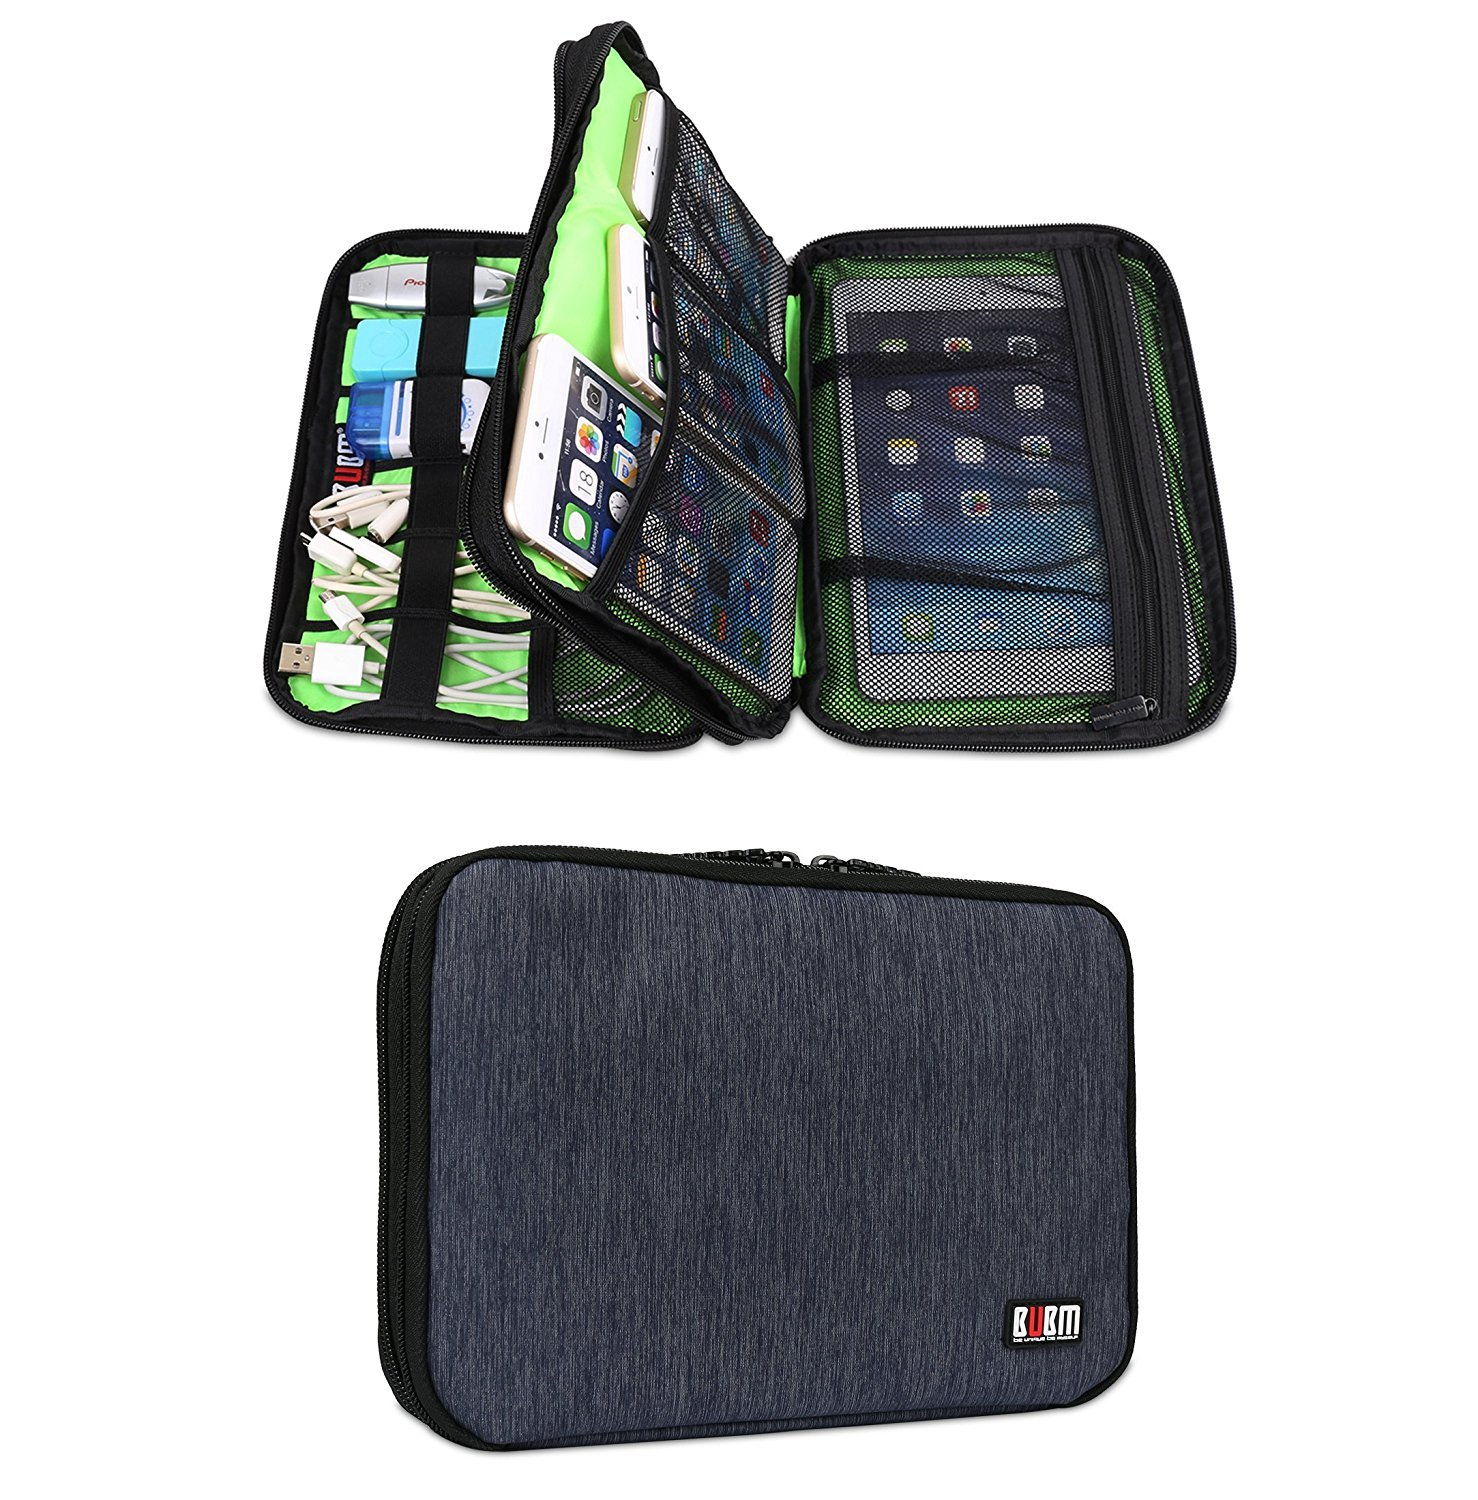 Electronics Travel Organizer Cord Cable Pouch Case for Falsh Hard Disk, Cables, USB, Memory Cards, Phone Charger, Power Bank and ipad Mini 7.9 Inch (Double Layer Blue)